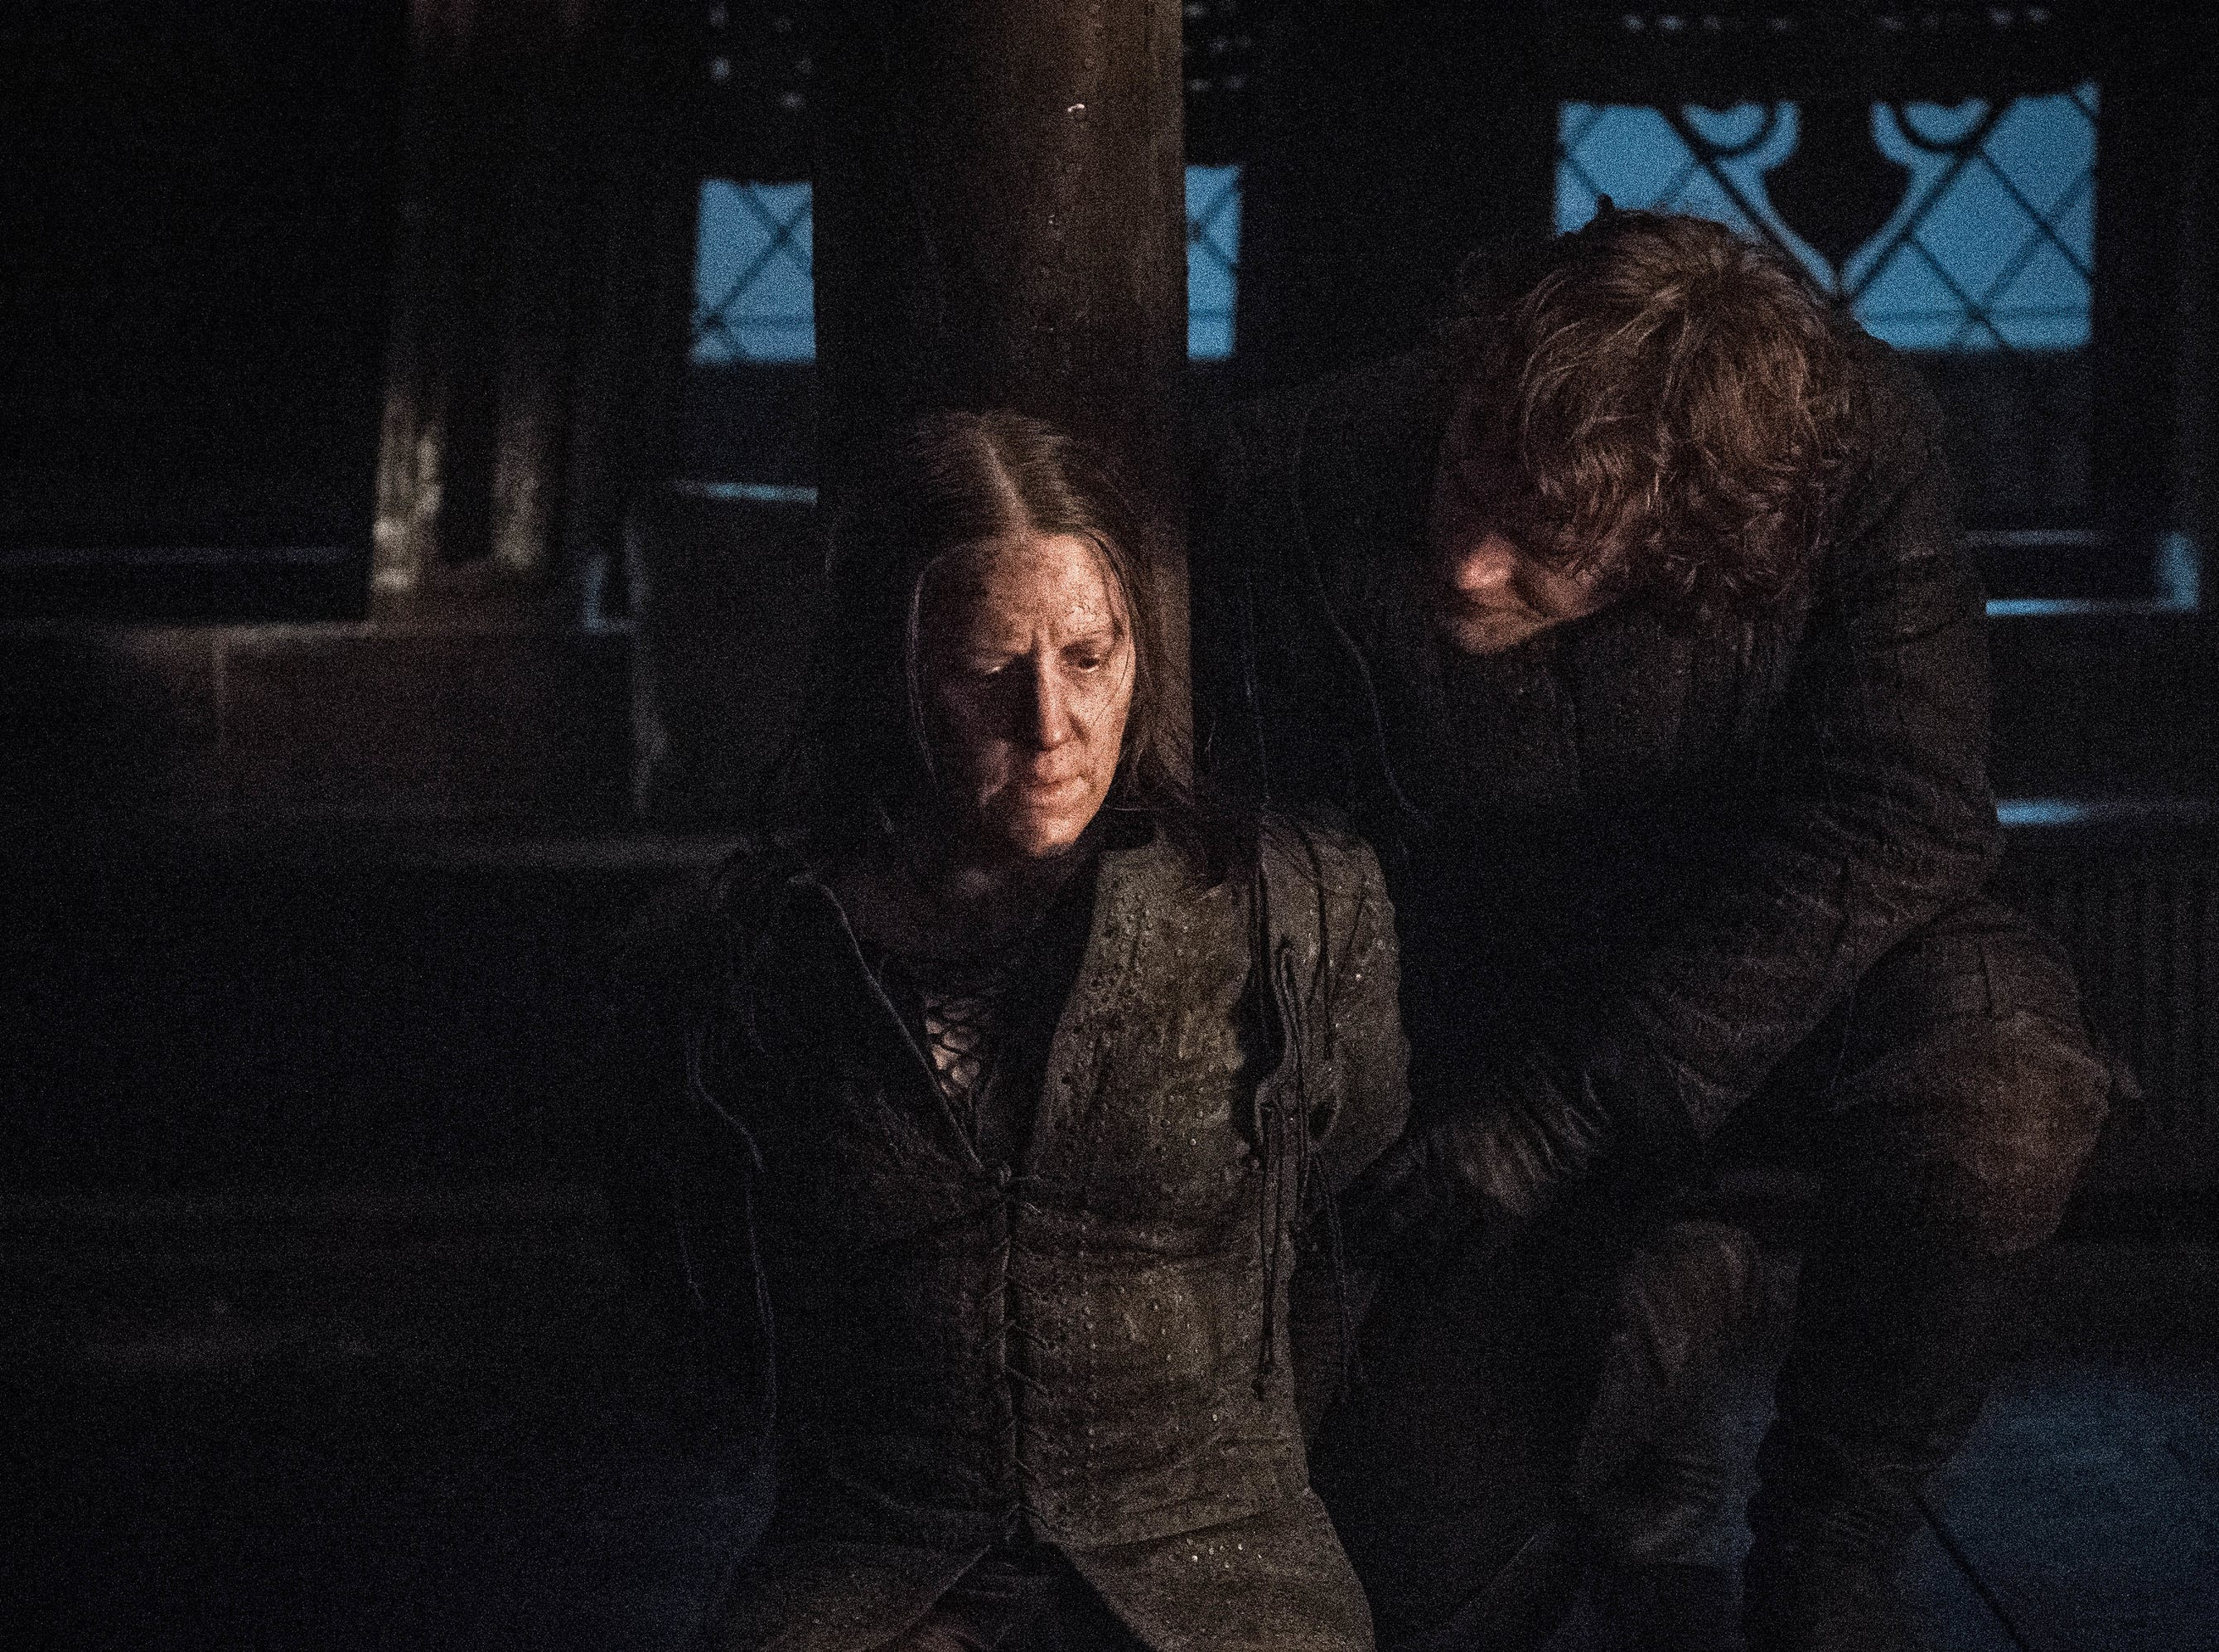 Theon Greyjoy (Alfie Allen) talks with a tied-up Yara Greyjoy (Gemma Whelan).